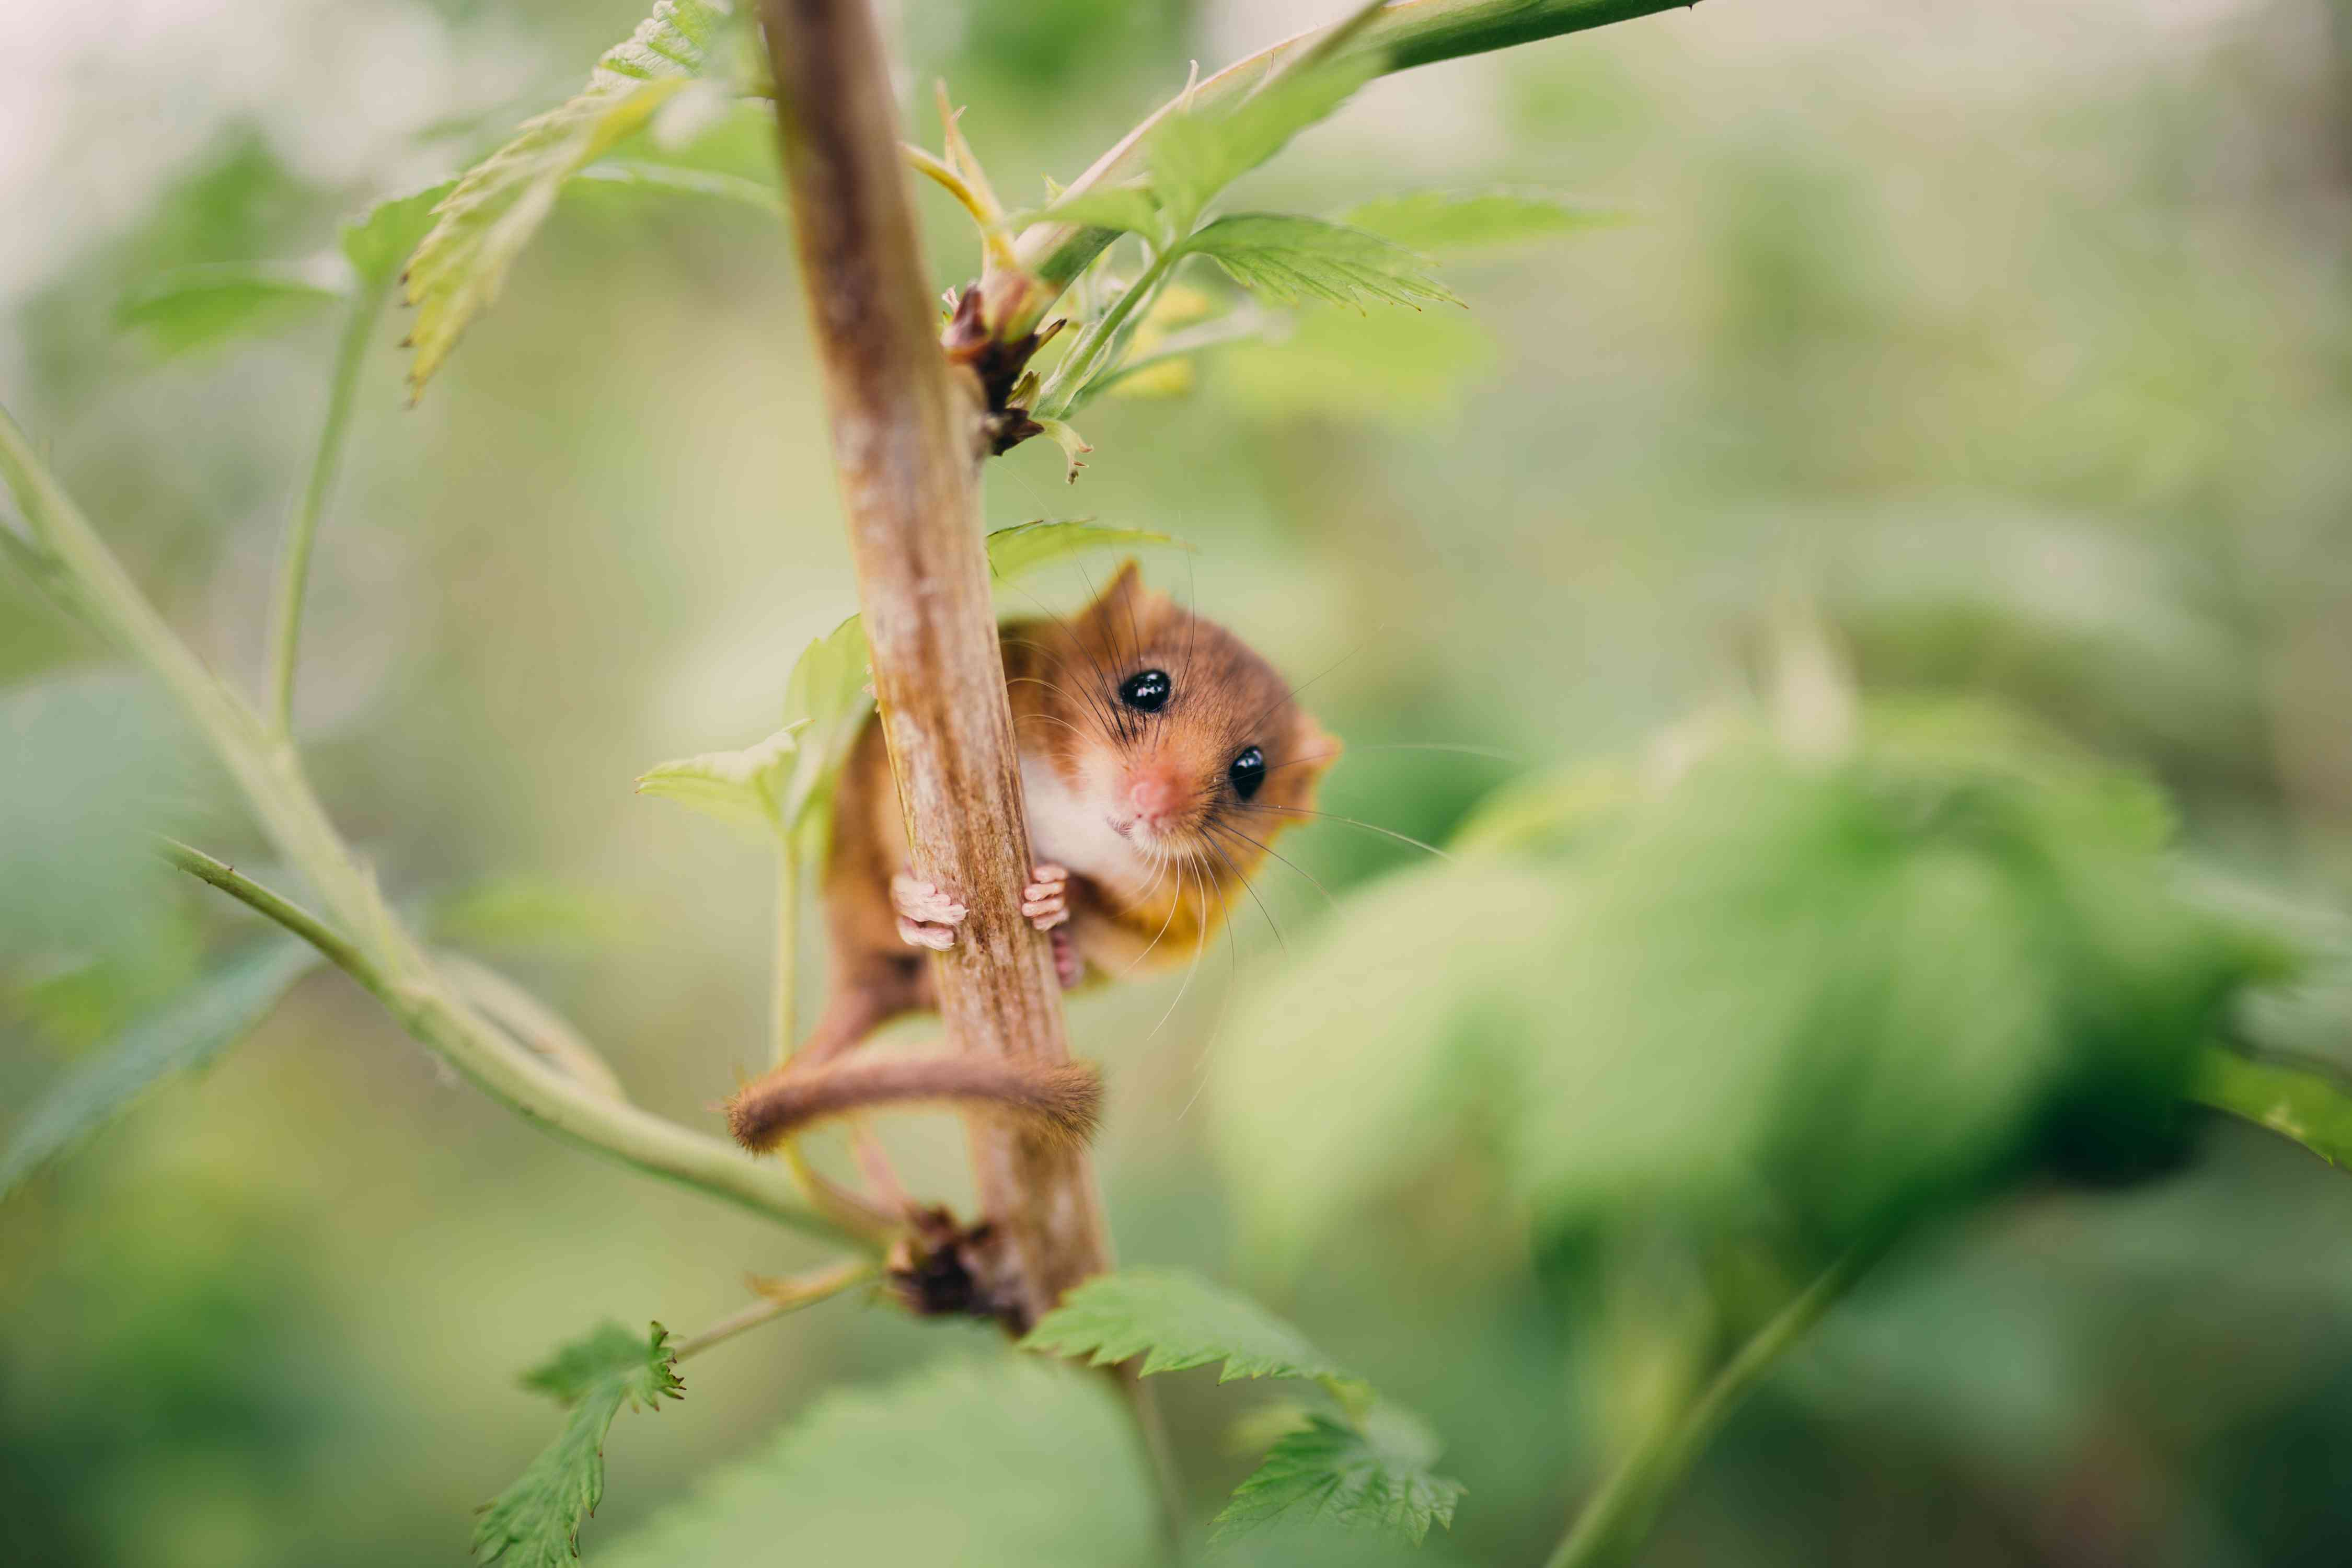 A dormouse pauses while climbing a twig